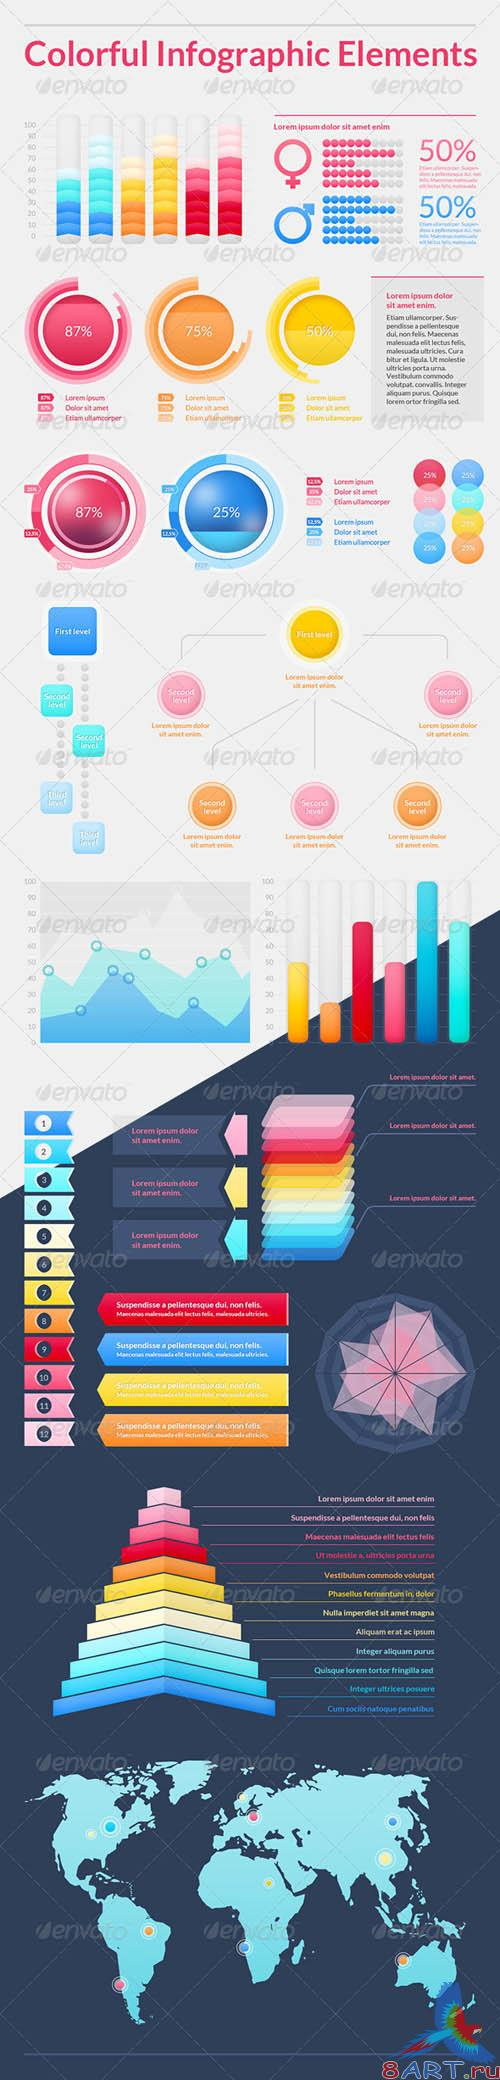 GraphicRiver Colorful Infographic Elements